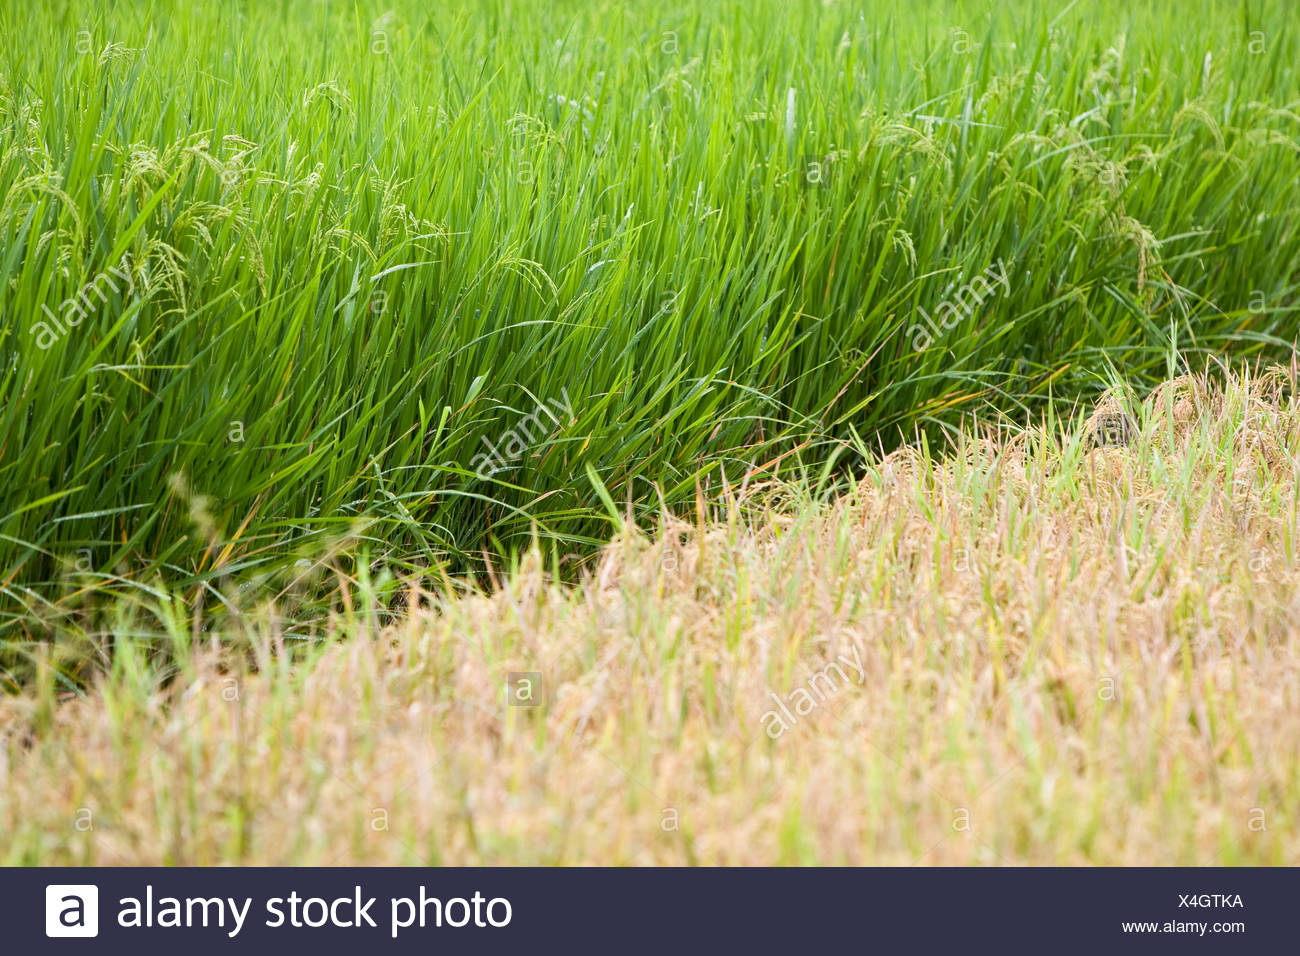 Two rice fields with different types of rice and at varying stages of ripeness, Lombok Island, Lesser Sunda Islands, Indonesia, Stock Photo